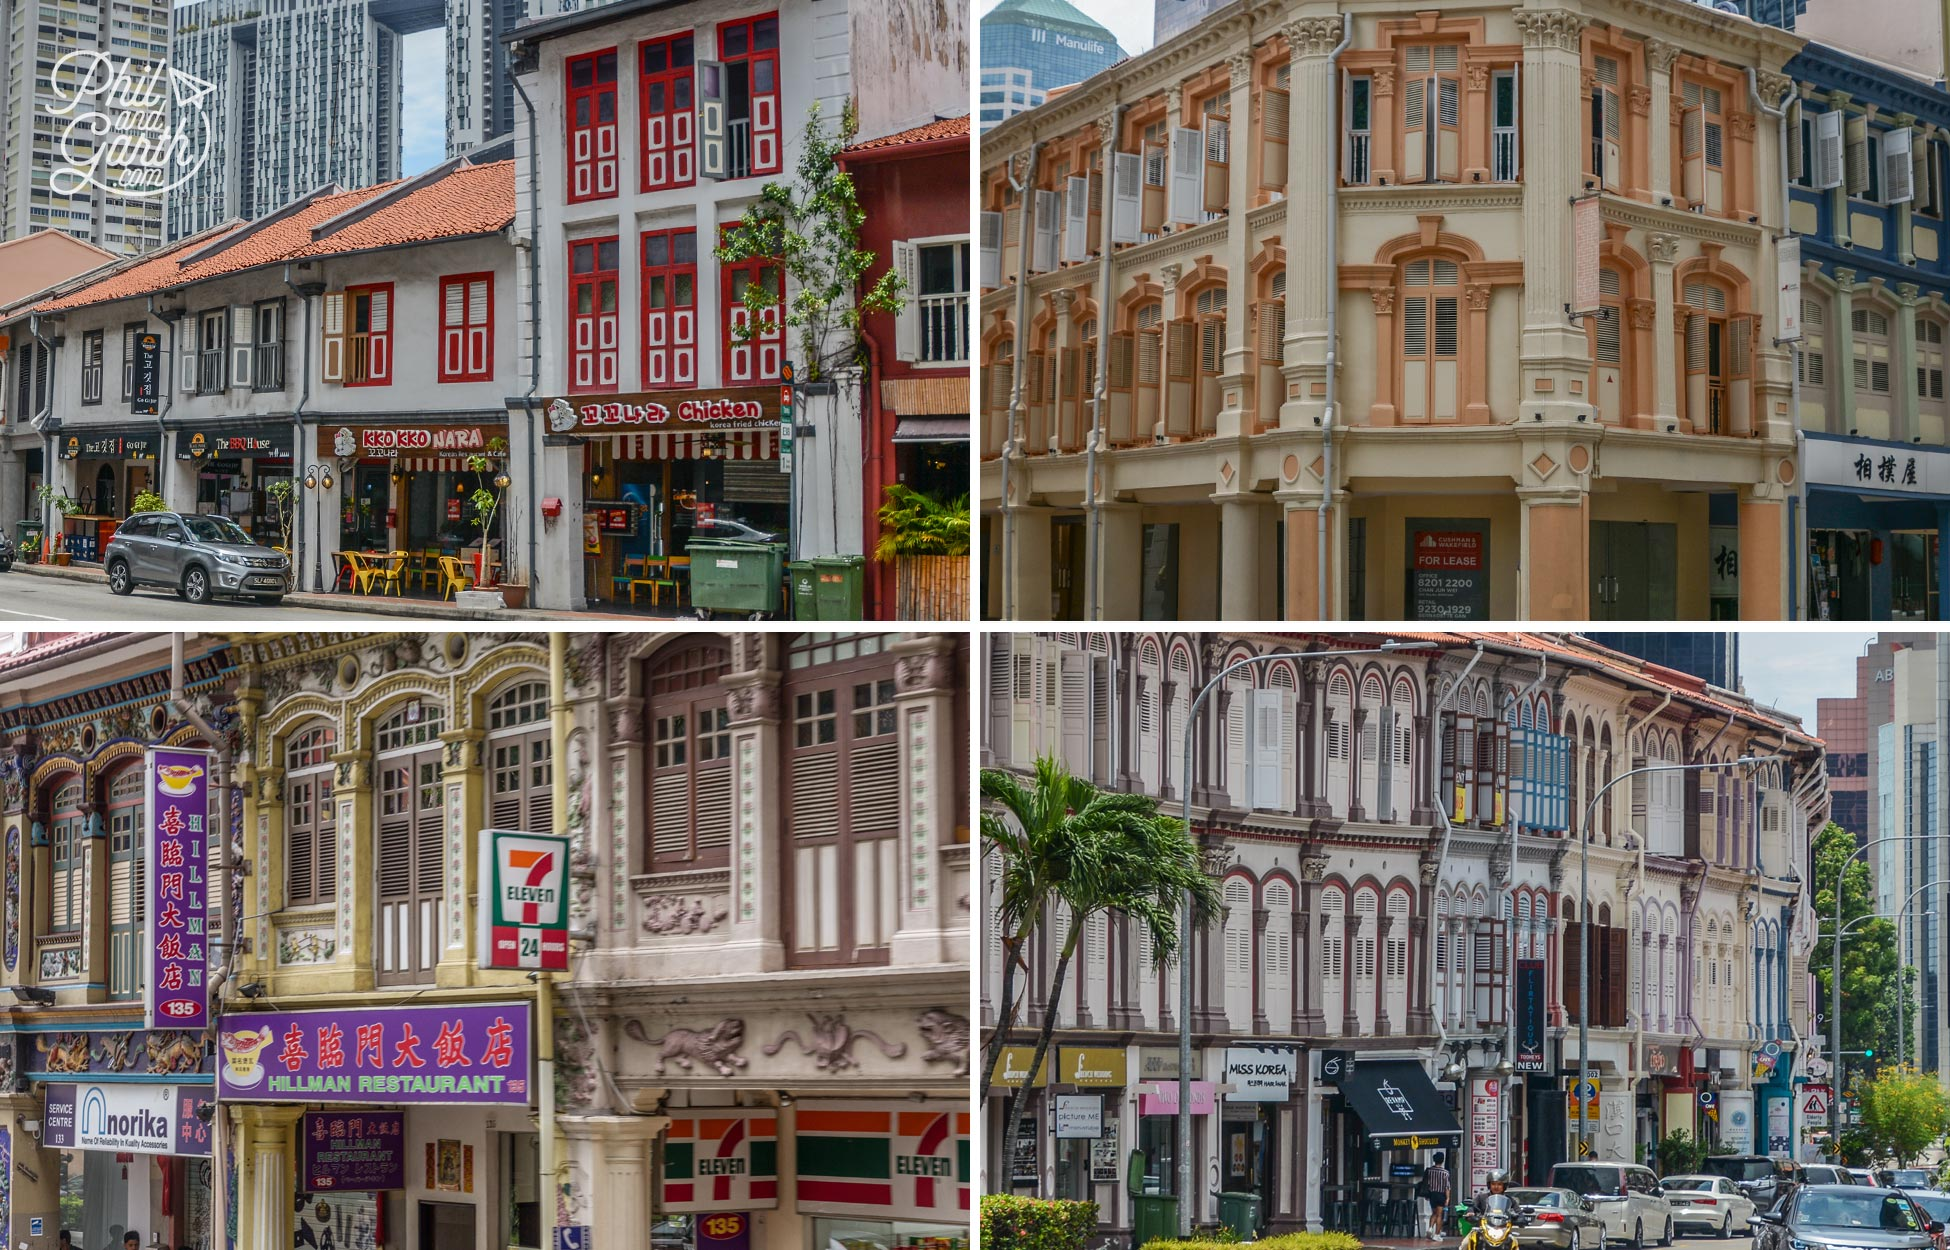 Various architectural styles of shophouses in Singapore